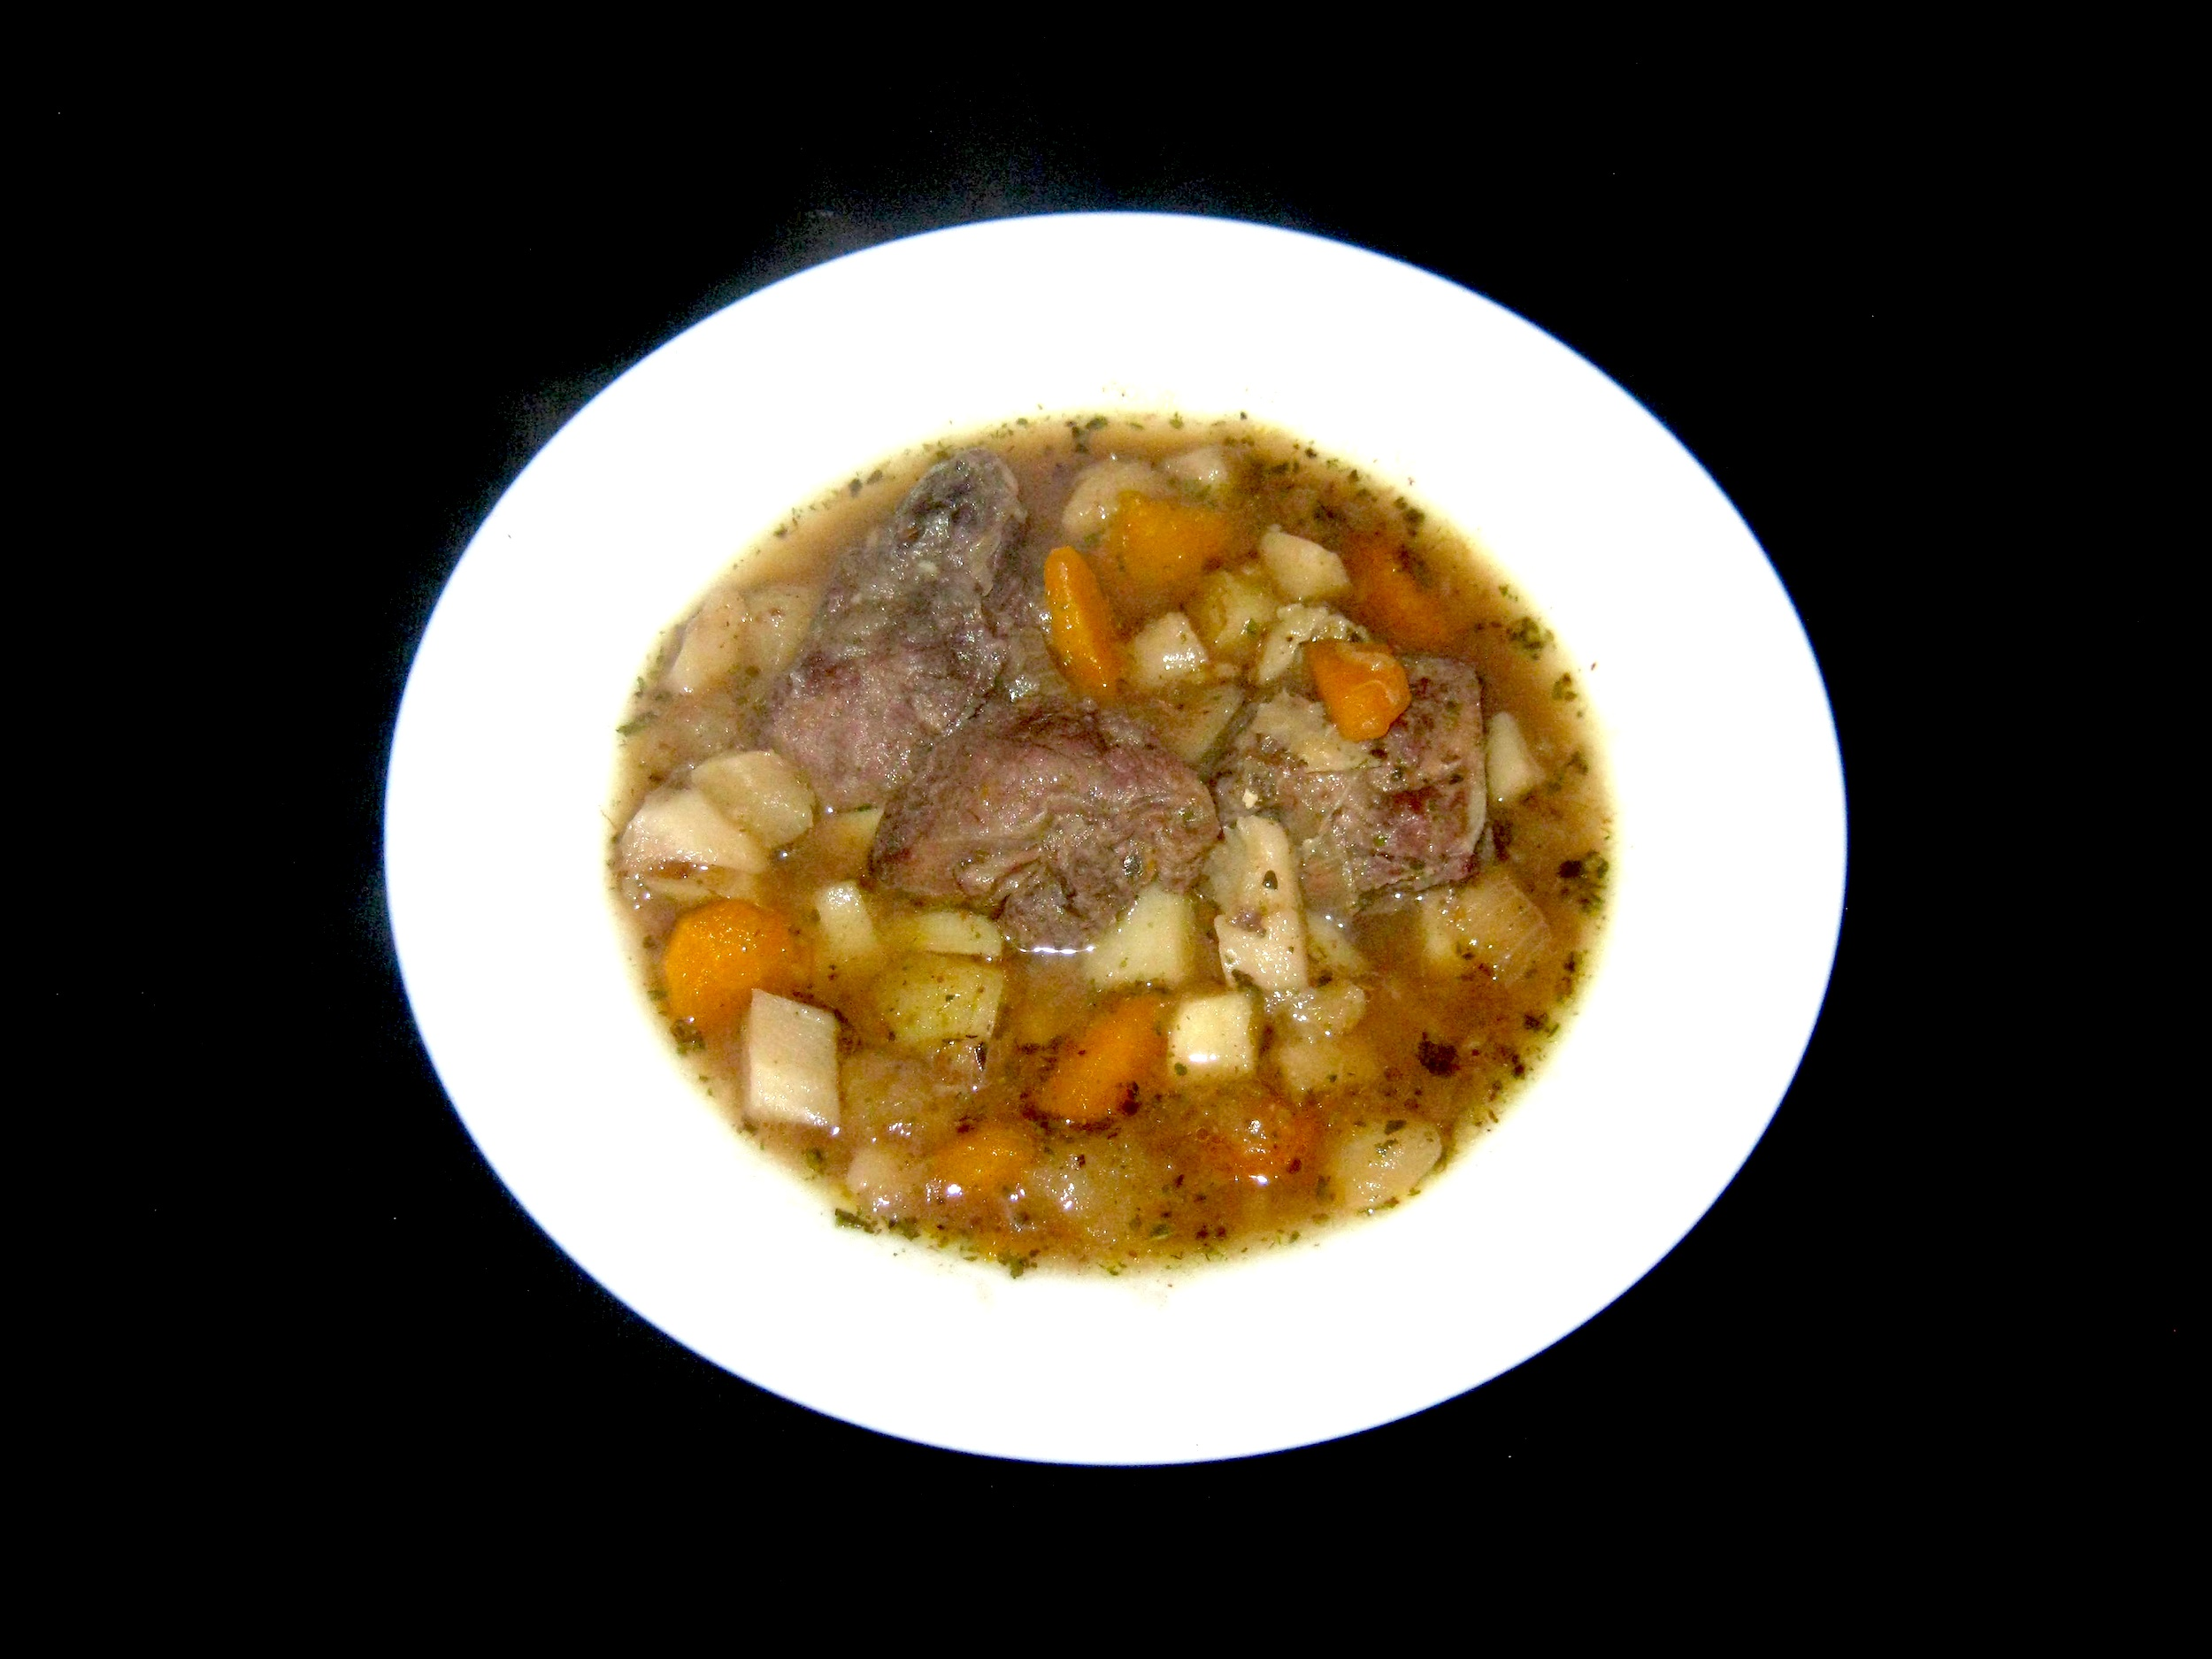 Turnip soup with venison